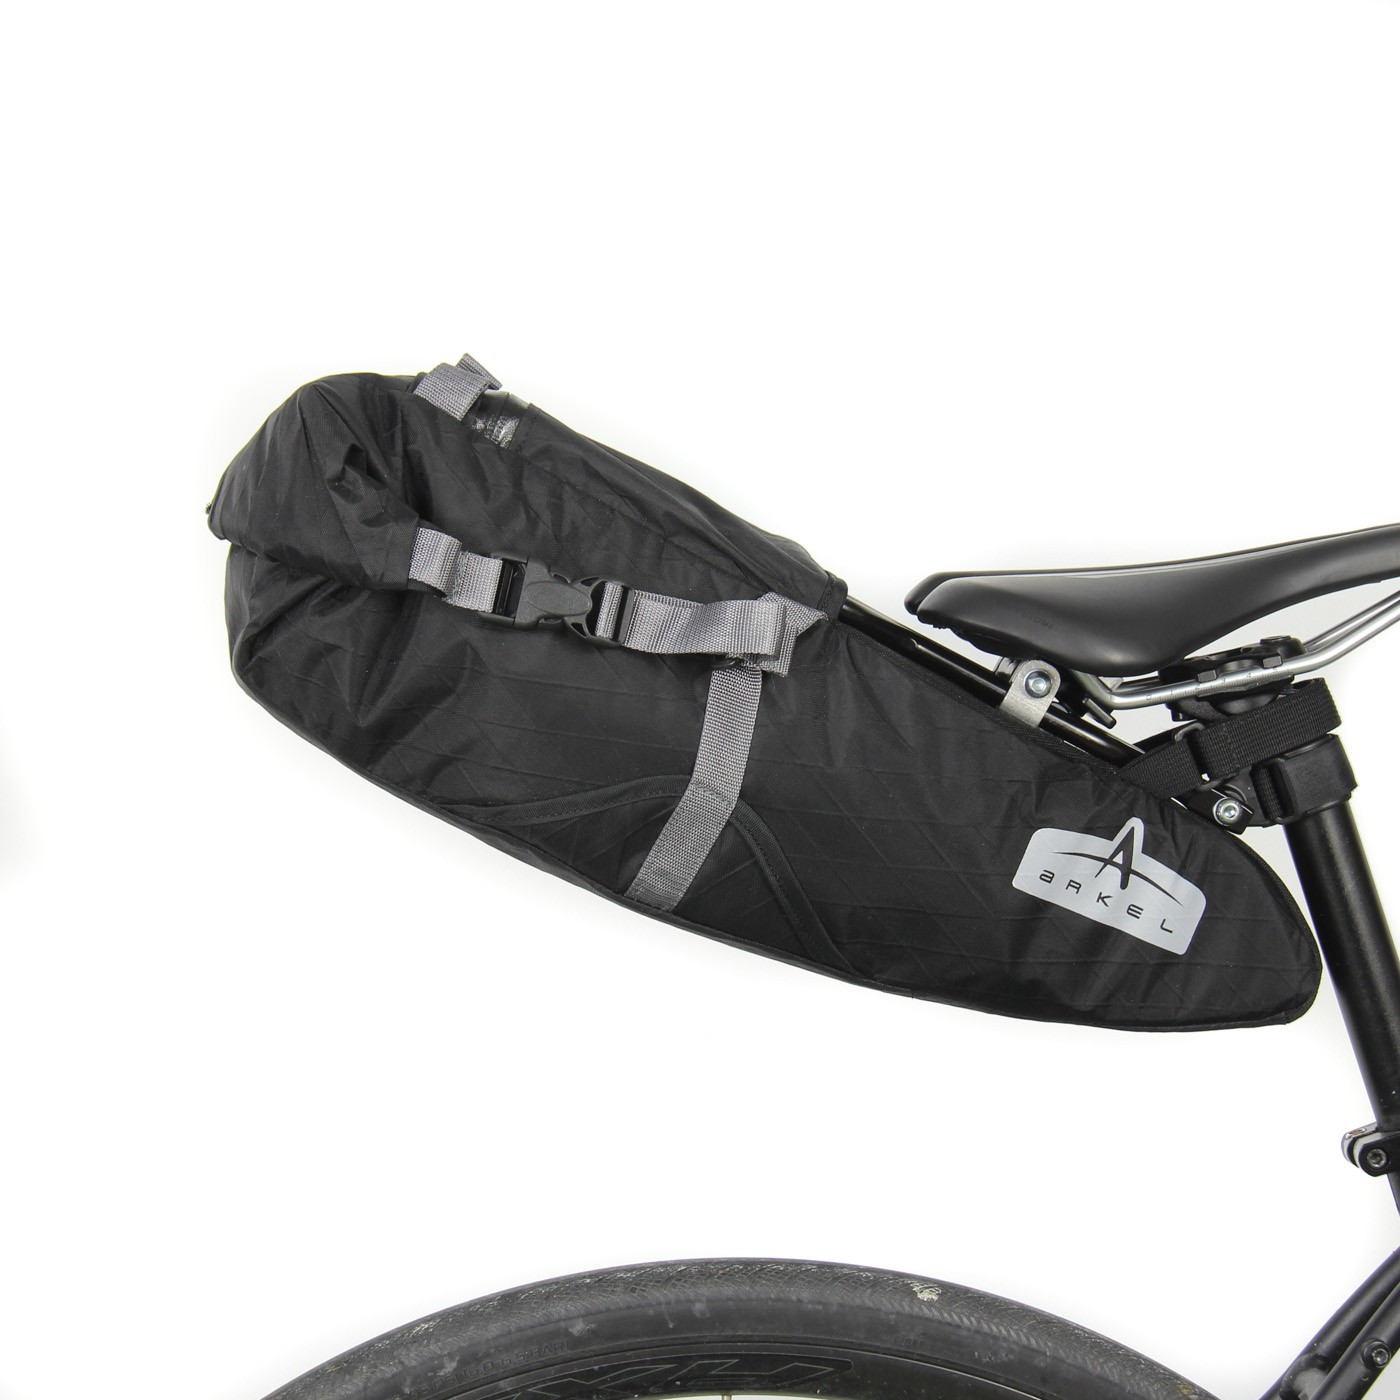 Seatpacker 9 Bikepacking Seat Bag